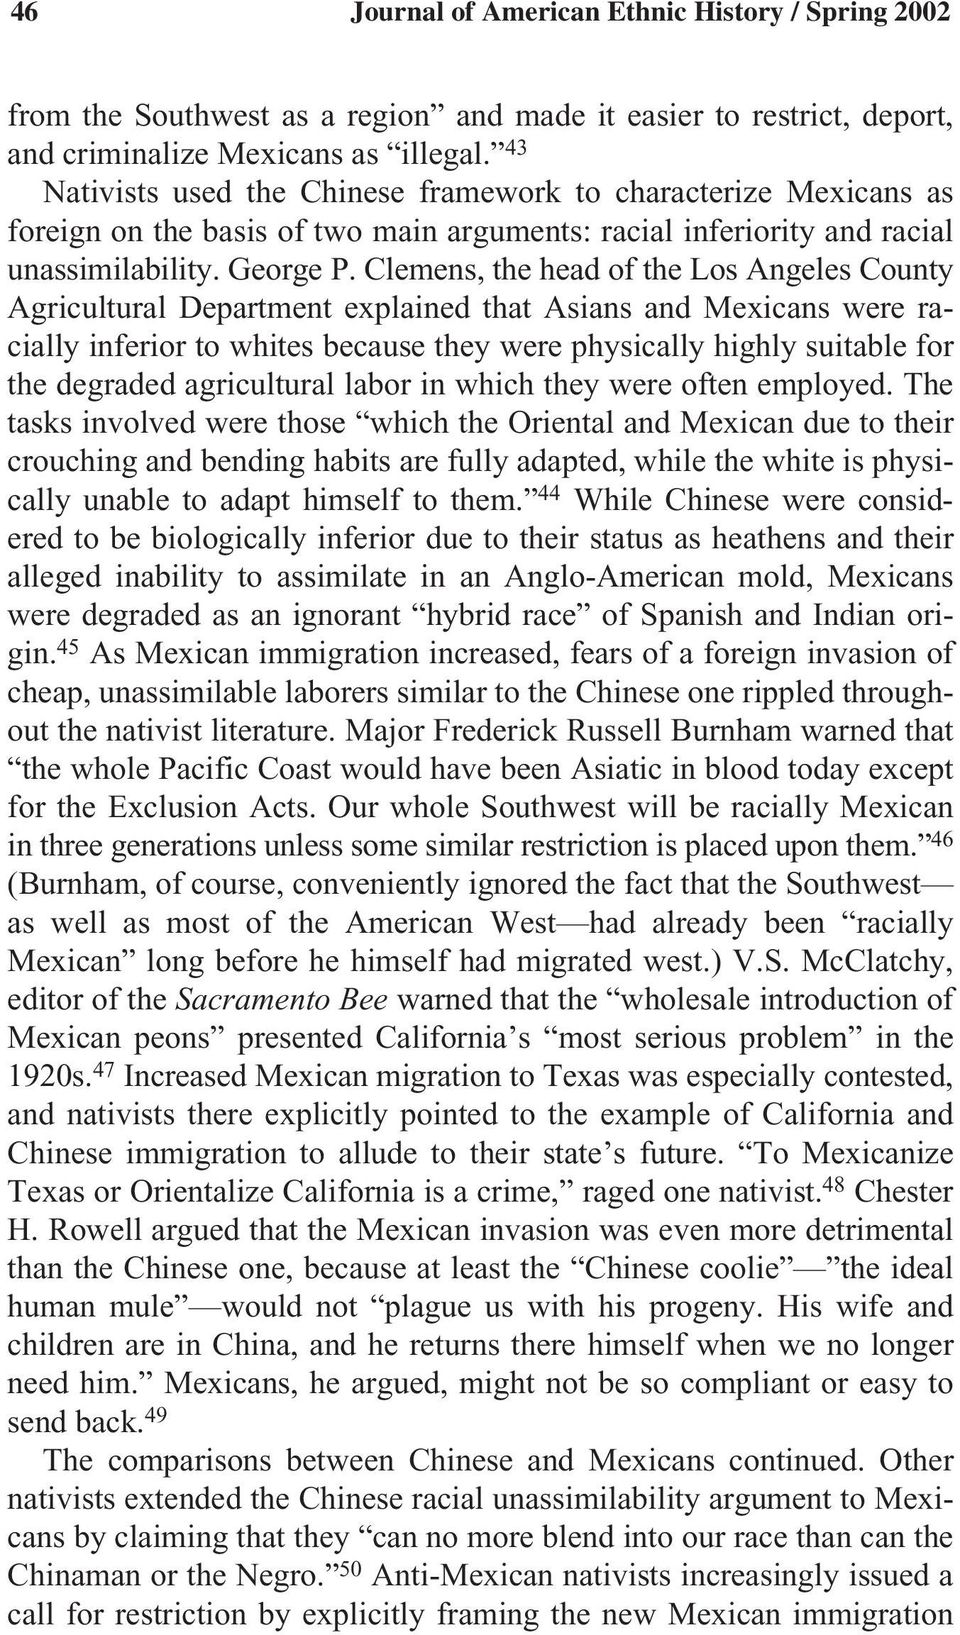 Clemens, the head of the Los Angeles County Agricultural Department explained that Asians and Mexicans were racially inferior to whites because they were physically highly suitable for the degraded